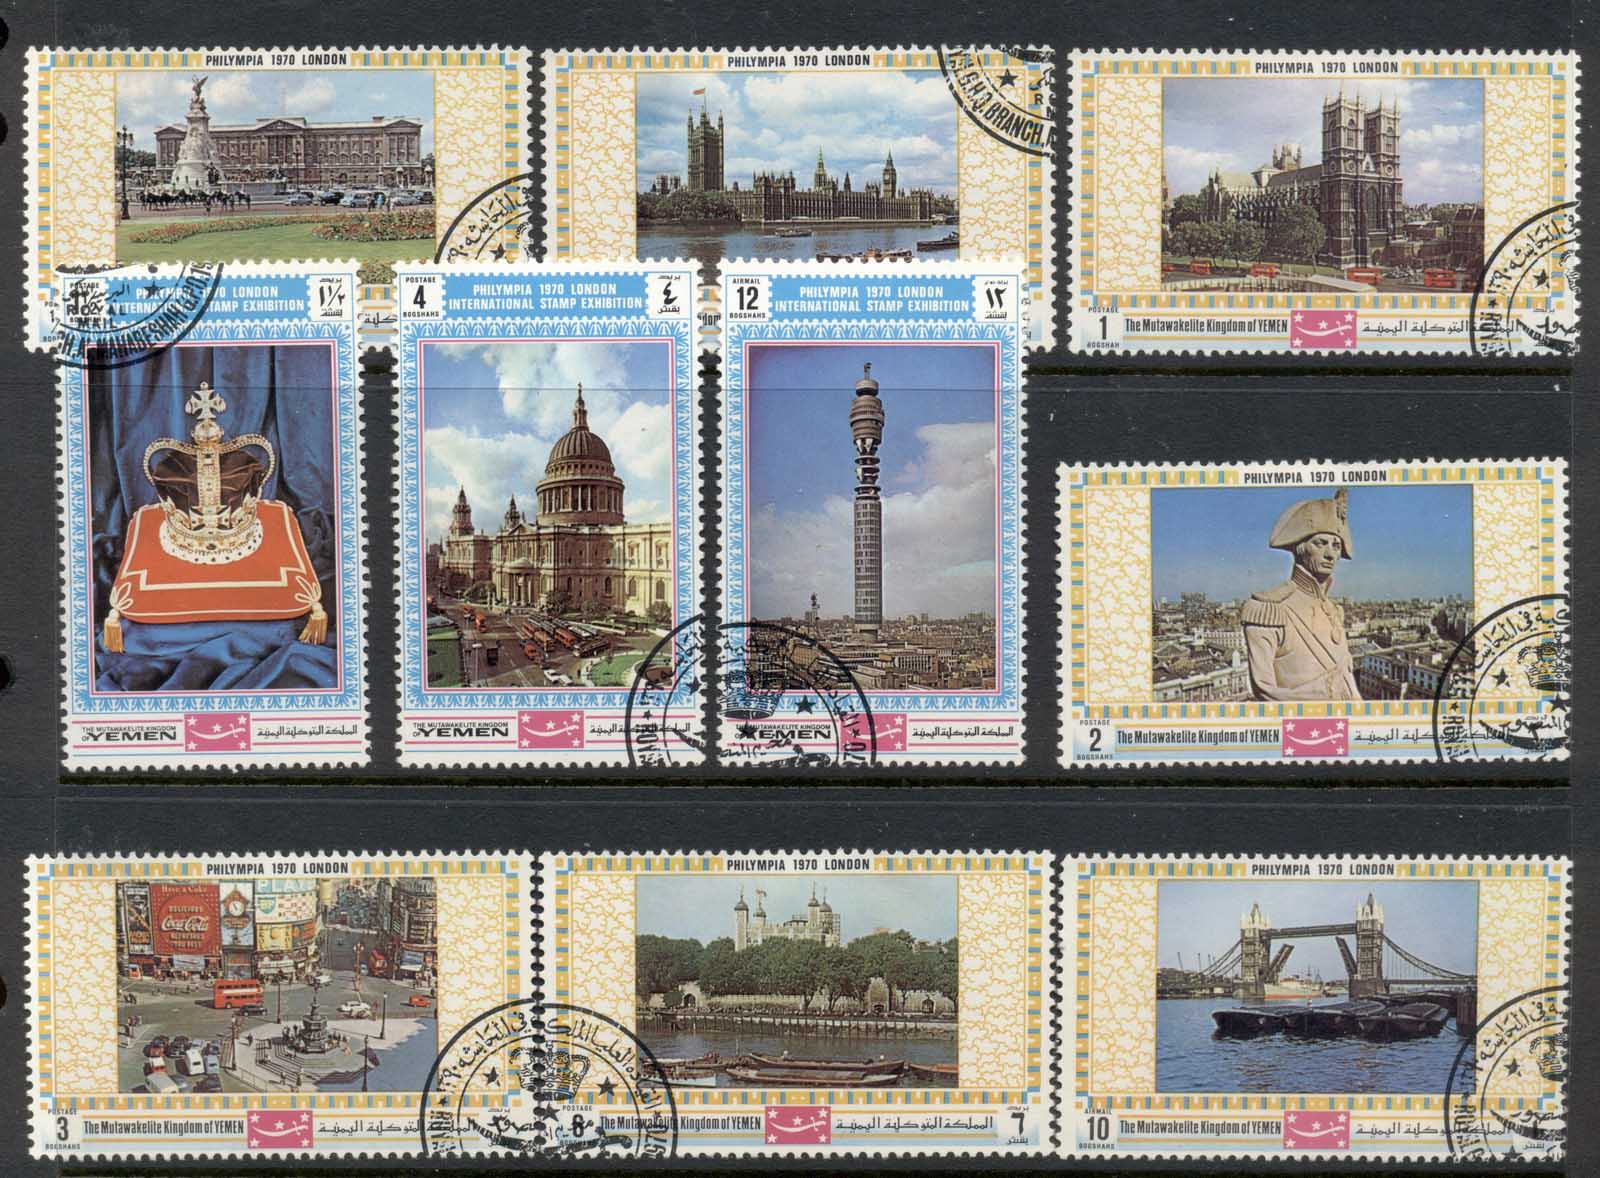 Yemen Kingdon 1970 Mi#1026-1035 Phylimpia Stamp Ex London Views CTO